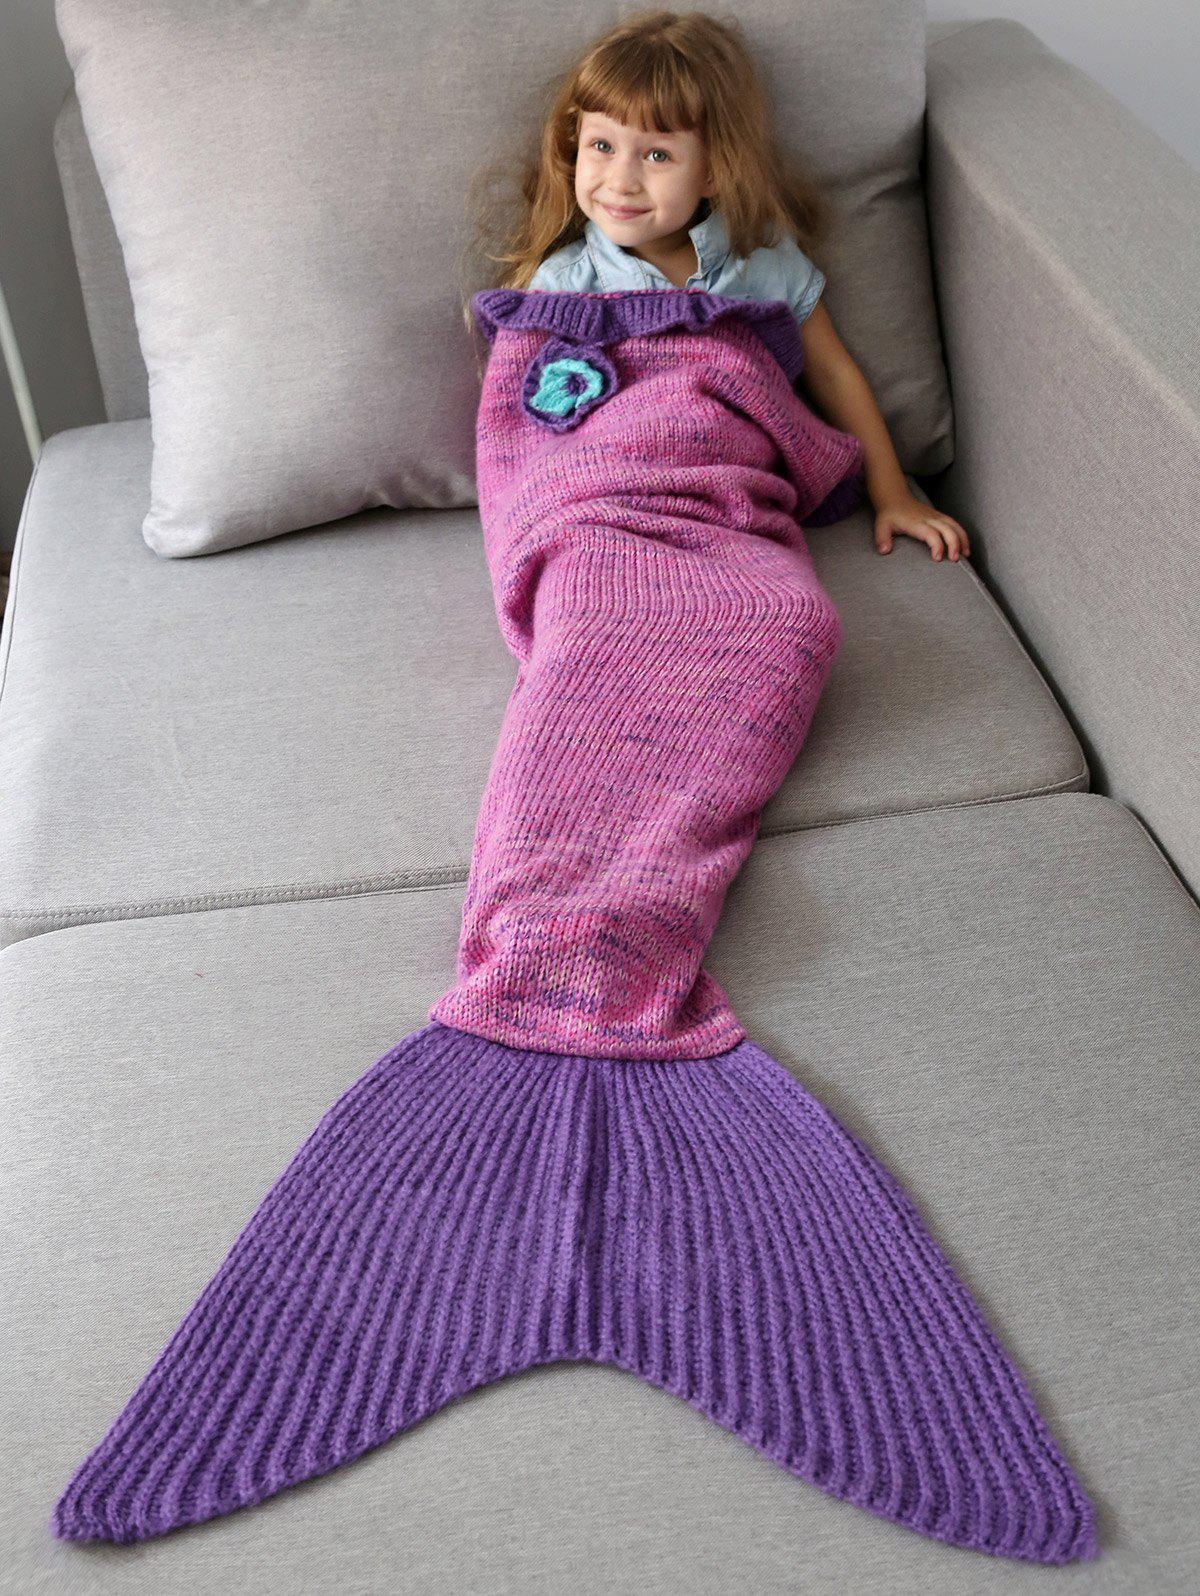 Handmade Flower Ruffles Knit Mermaid Blanket Throw For Kids